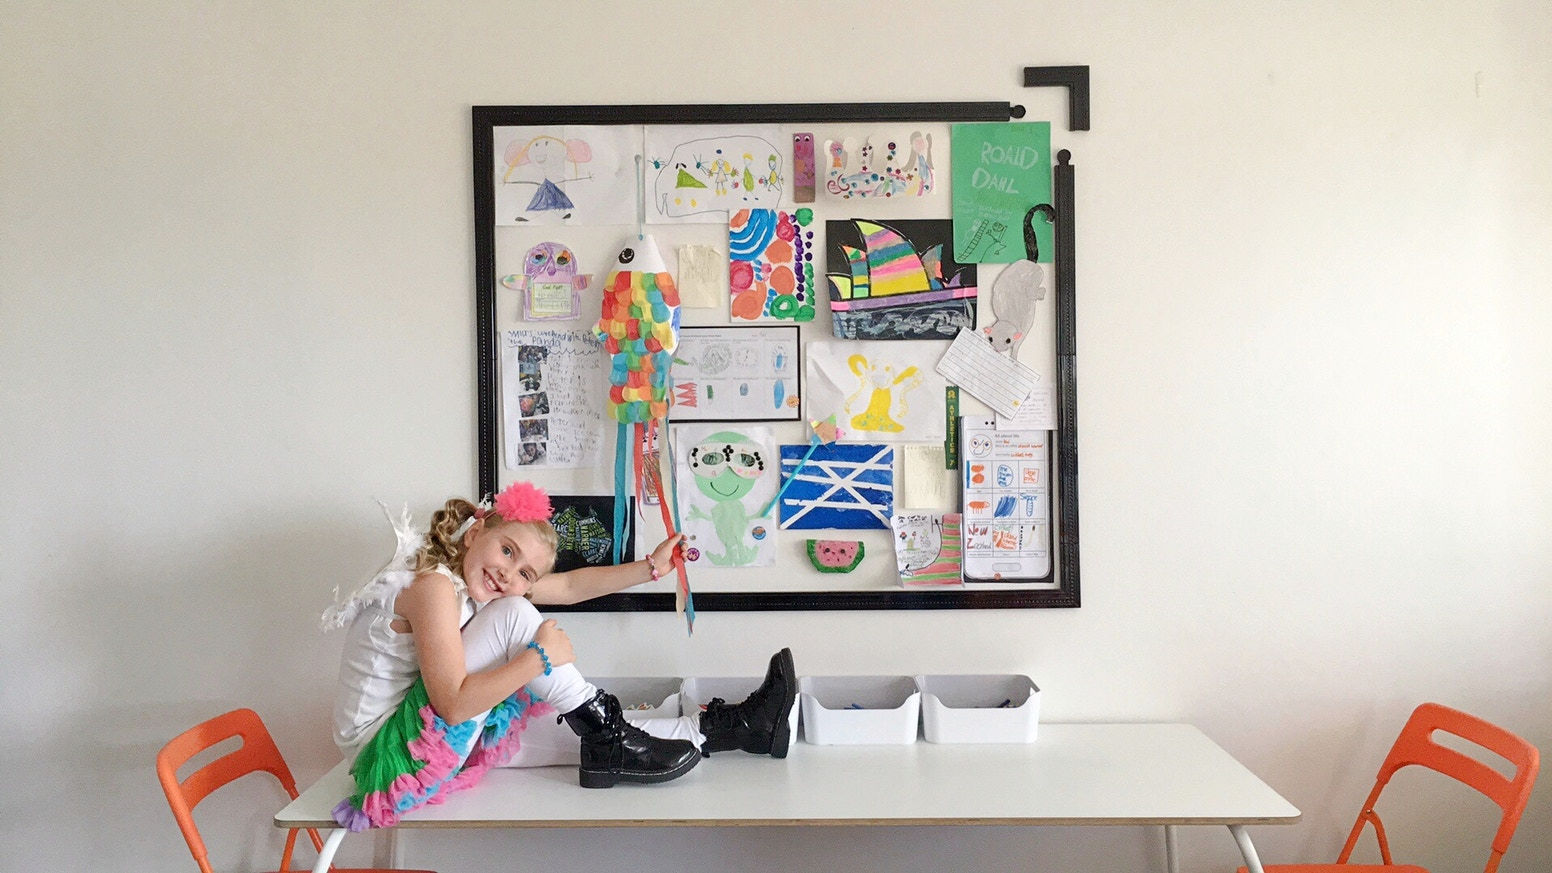 Give your child's artwork the attention it deserves. Finally a frame you can resize! Successfully Funded !!